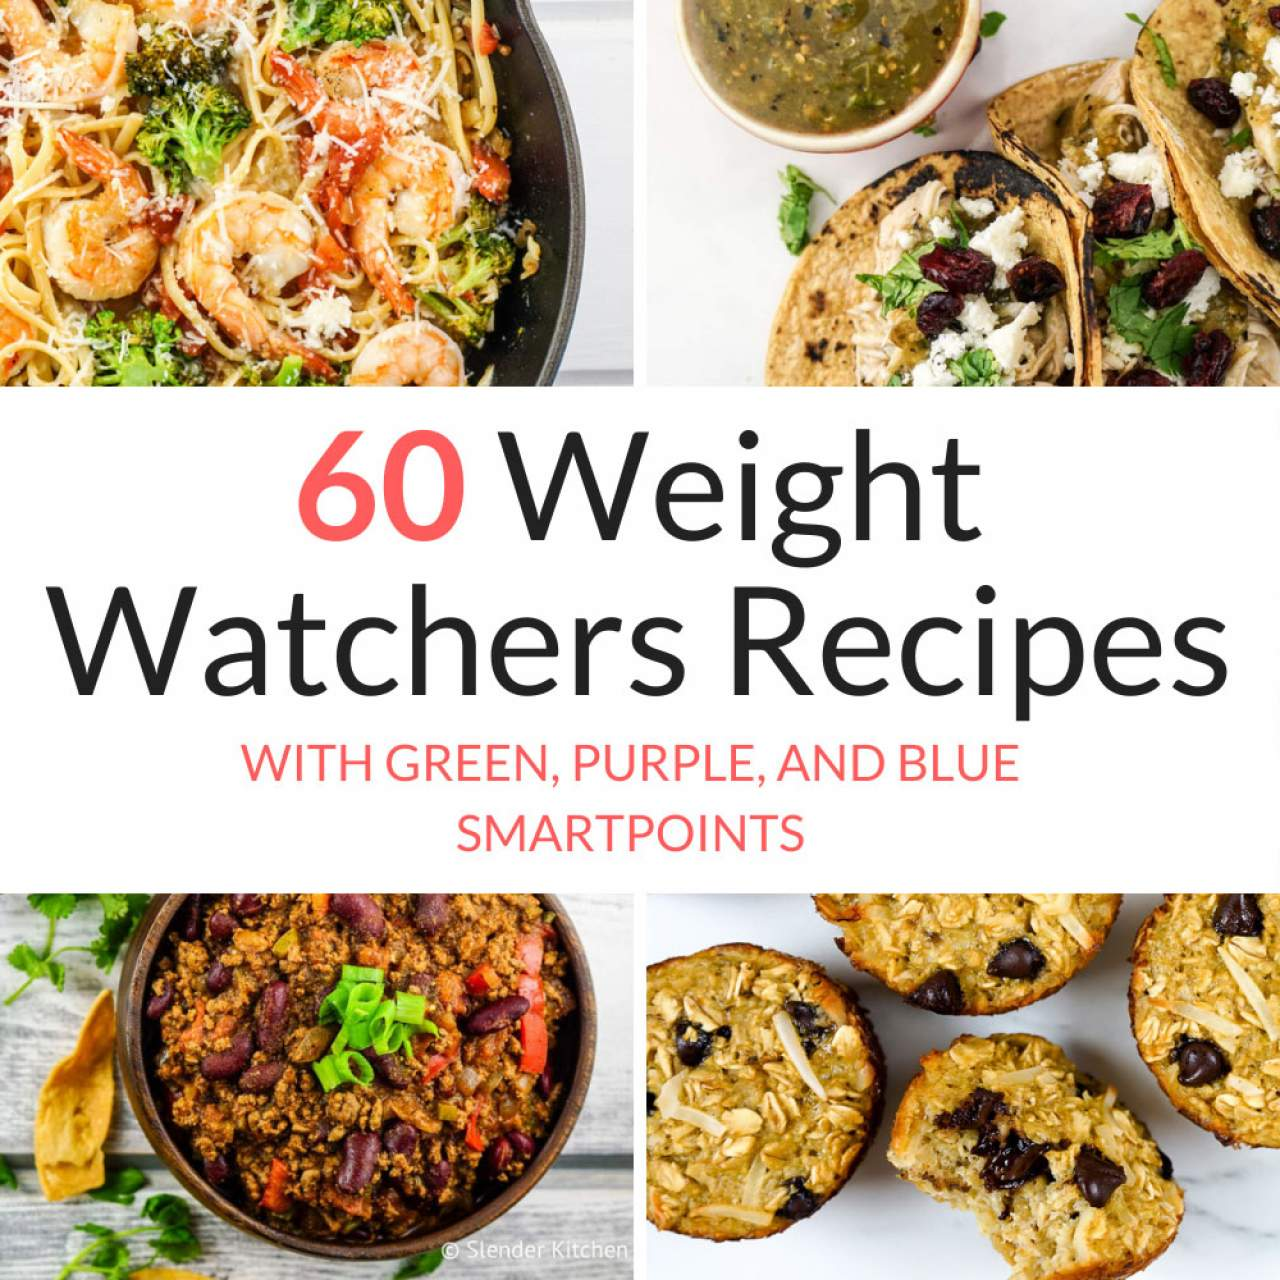 60 Weight Watchers Recipes With New Myww Points Slender Kitchen